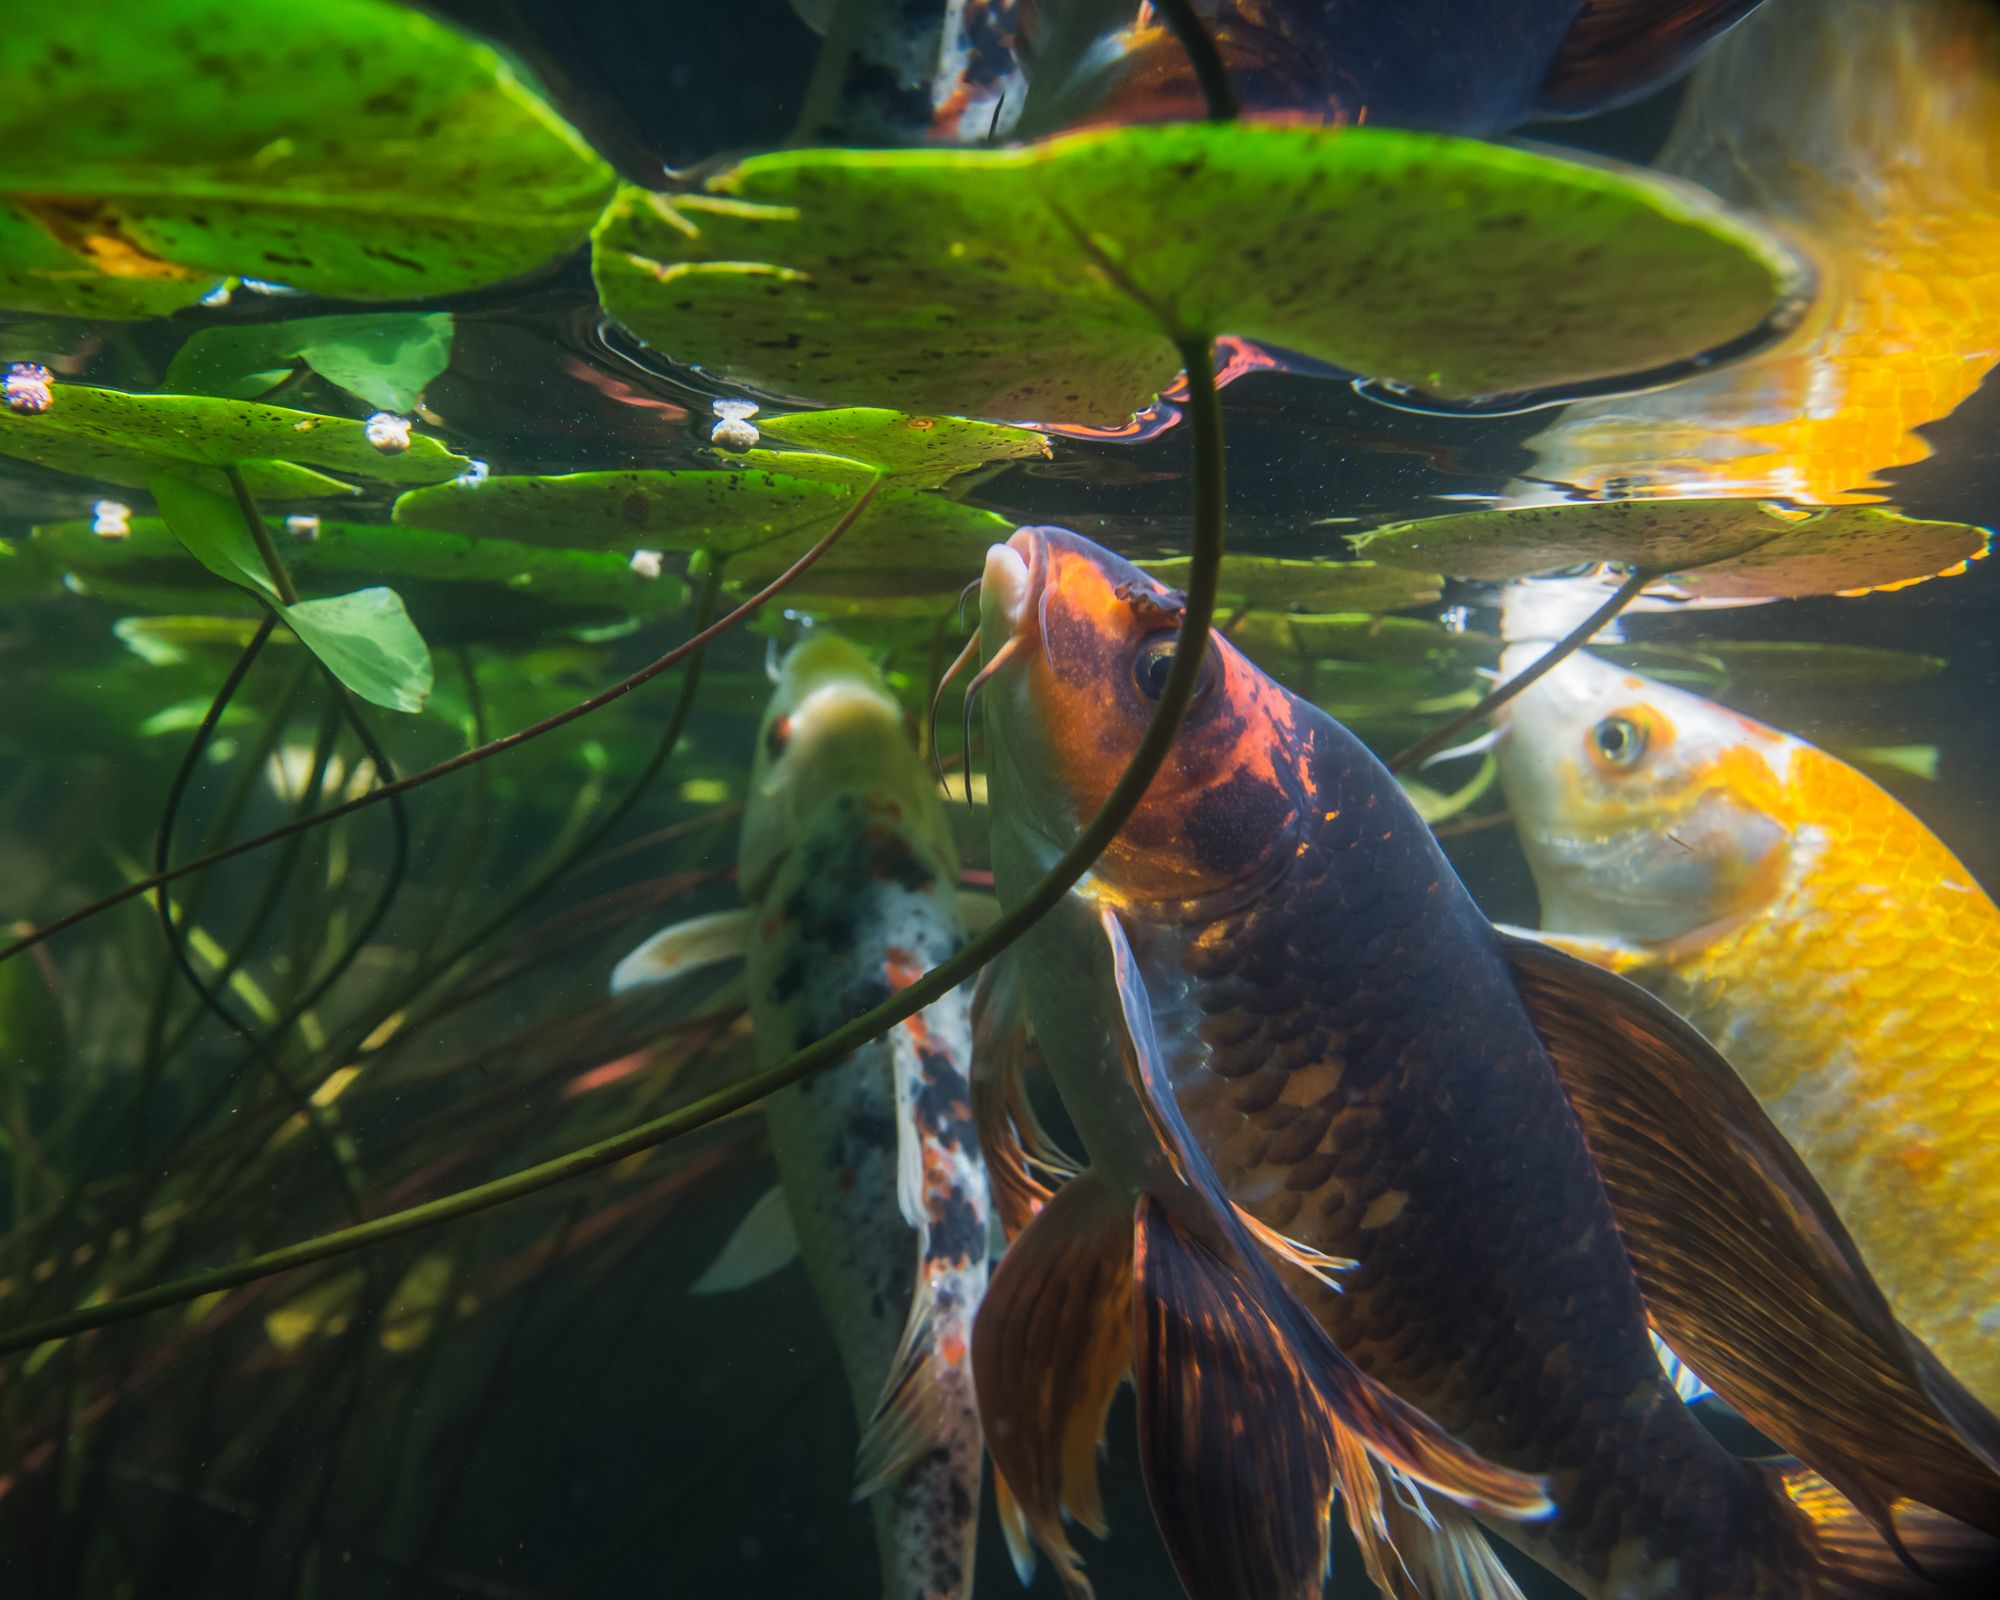 Image result for under water images of a koi pond